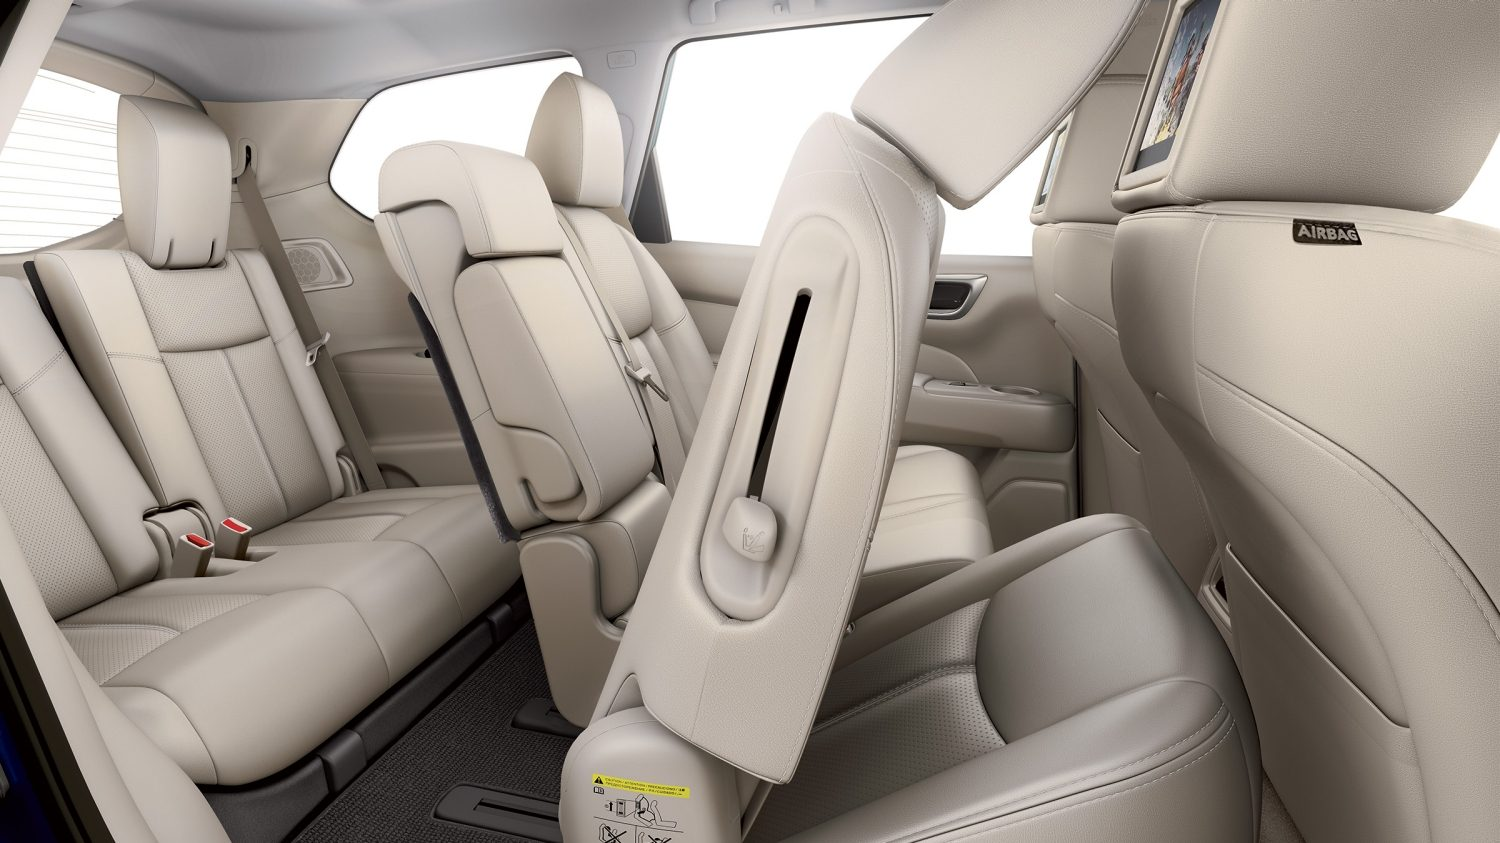 Captivating Nissan Pathfinder Sliding Seats, Showing EZ Flex Seating System With Easy  Access To Third Row